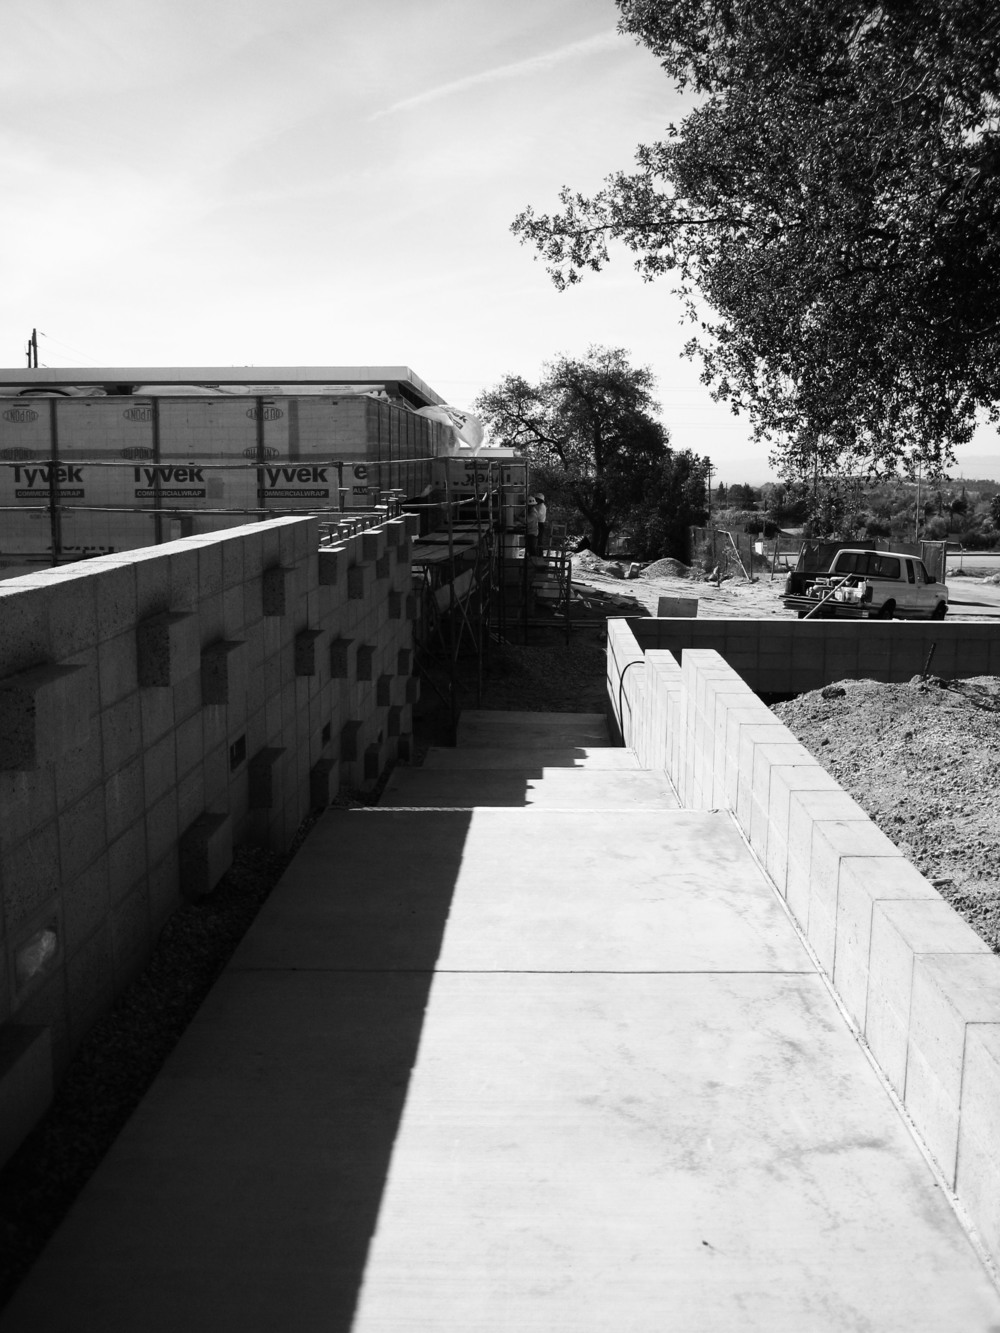 An articulated concrete block wall greets visitors approaching from the parking area.  Landscaping and lighting have also since been installed in the planter to the right.